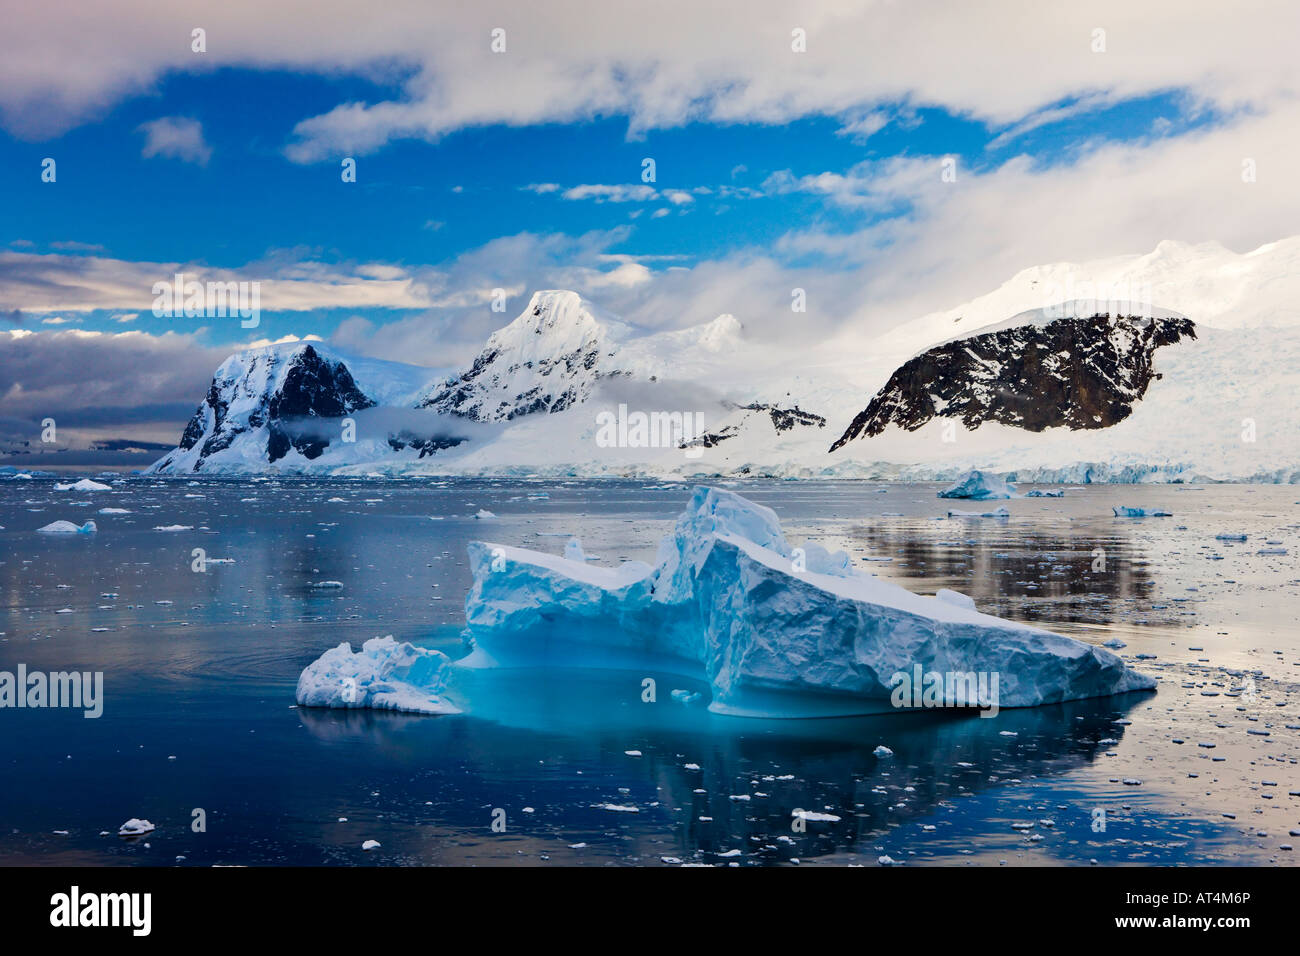 Icebergs and mountains, Antarctic Peninsula - Stock Image